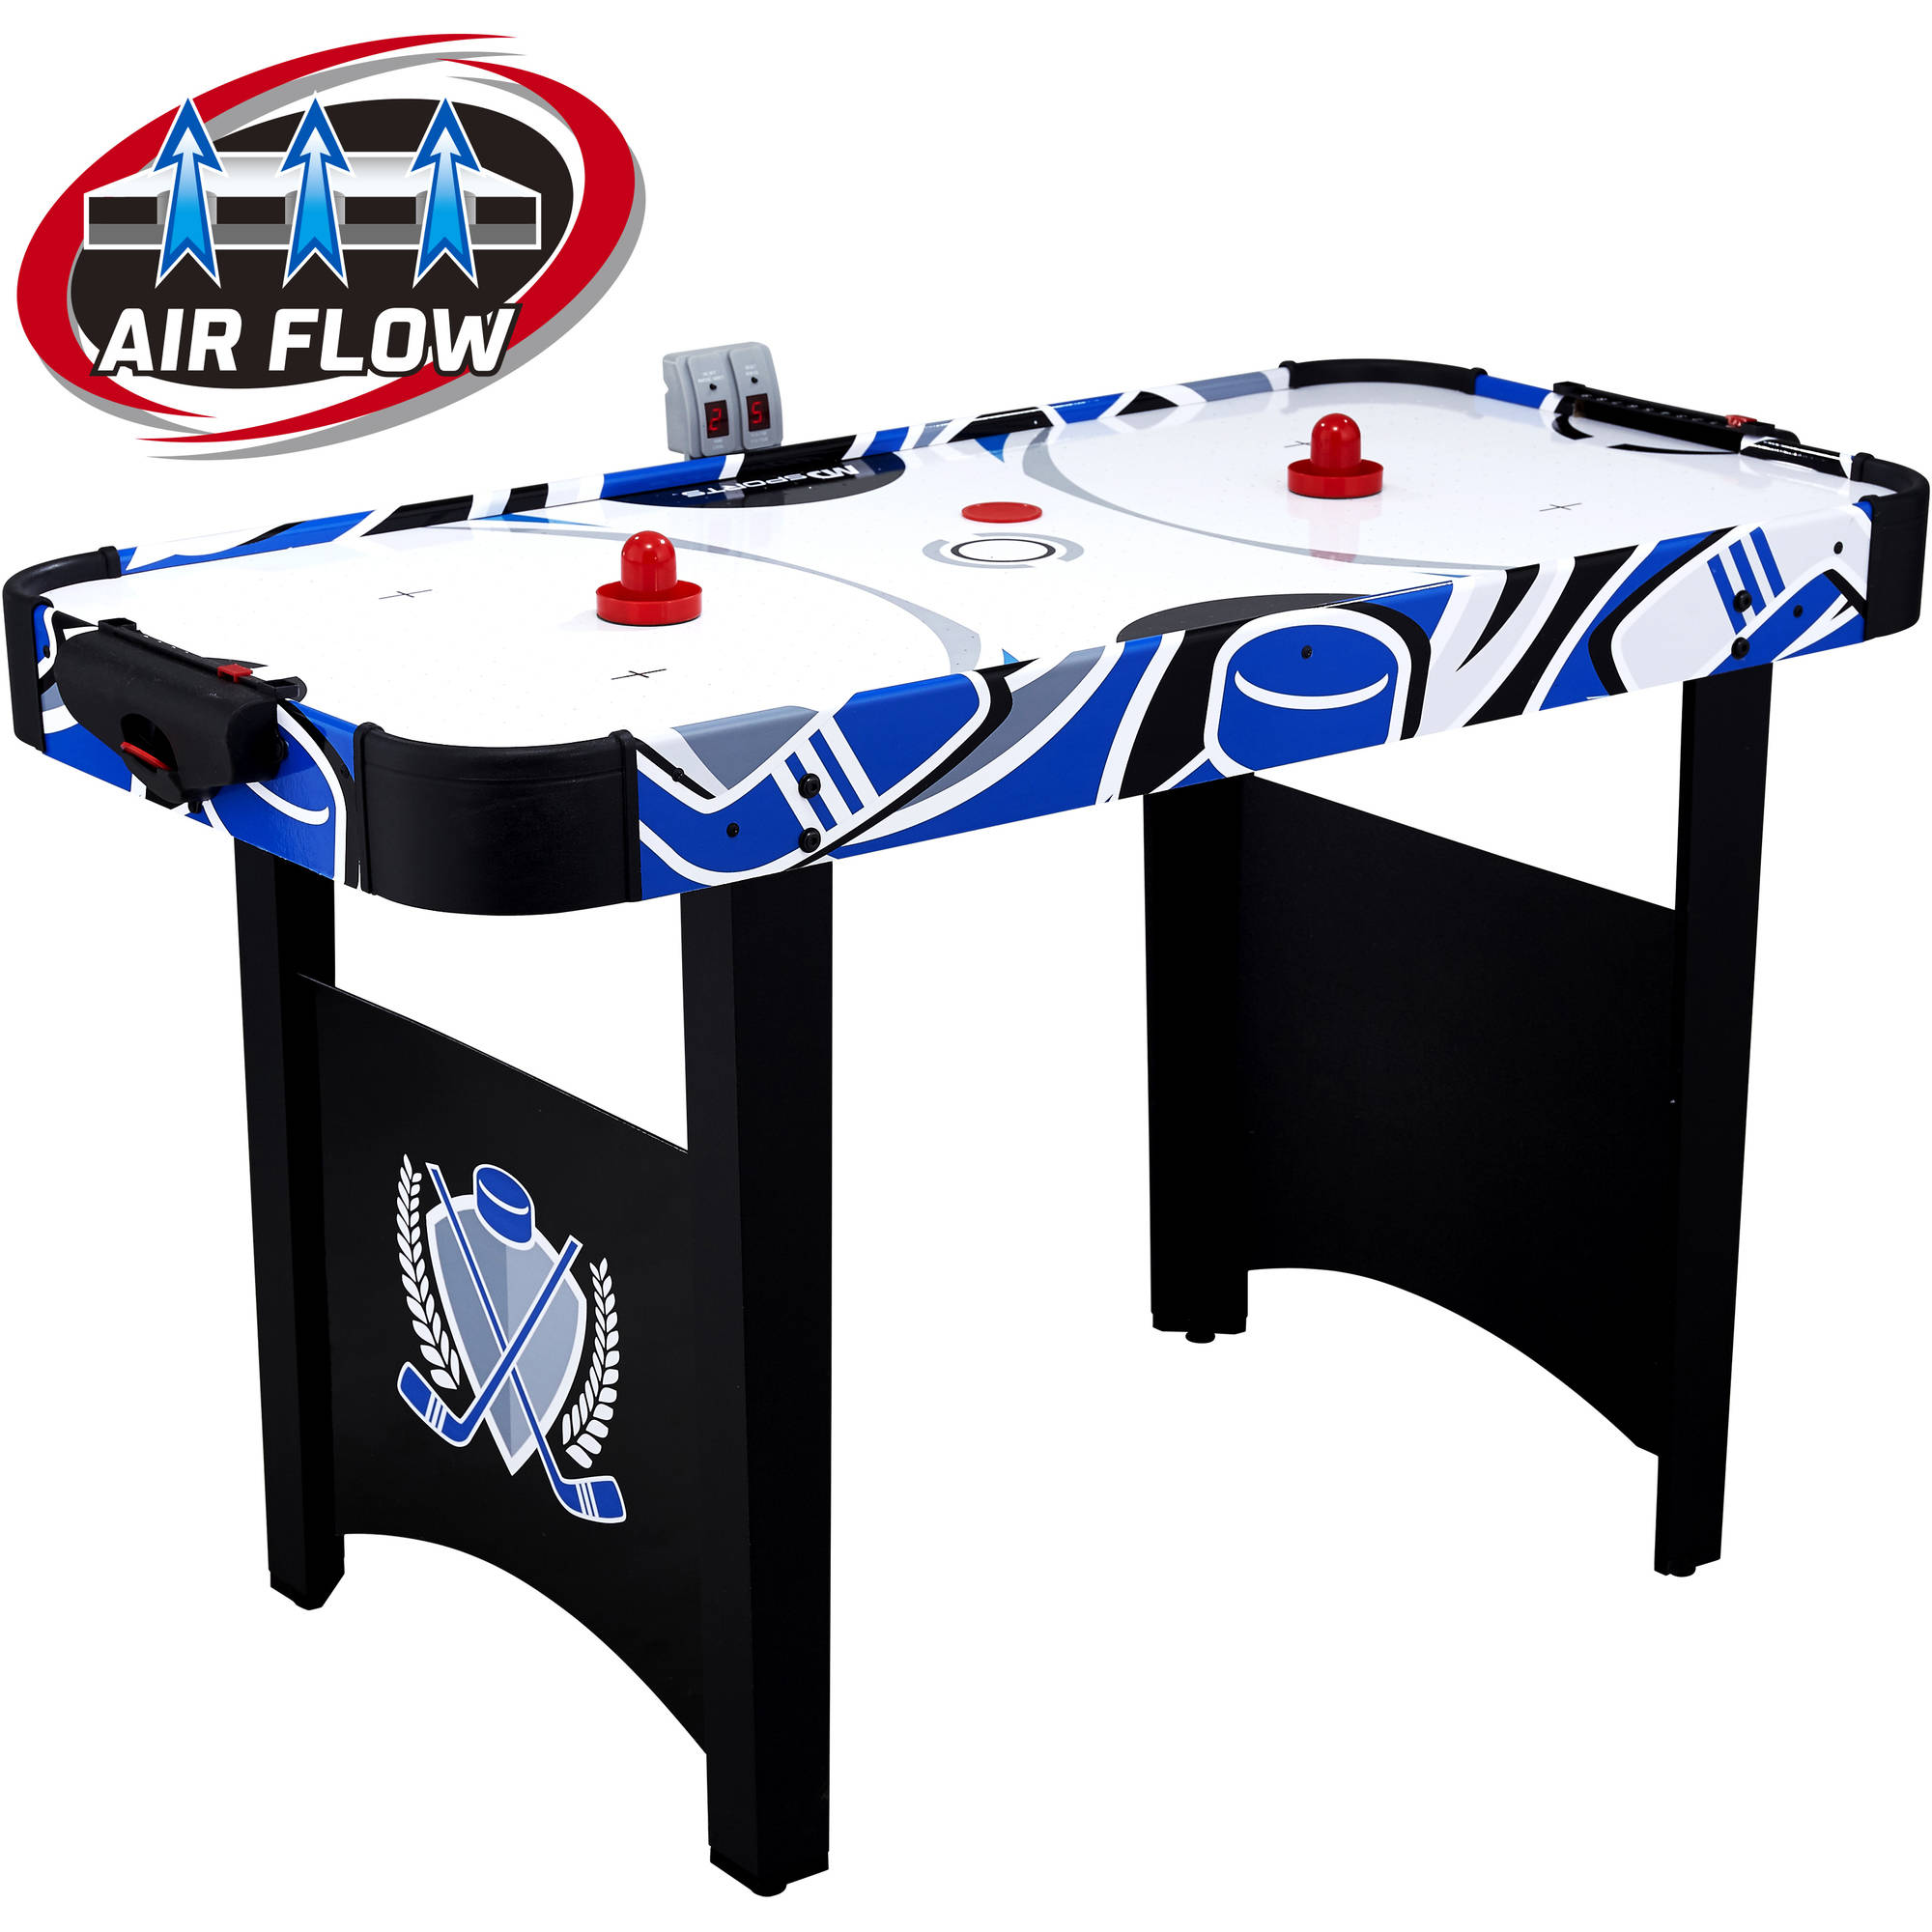 Hathaway Midtown 6 Foot Air Hockey Family Game Table With Electronic  Scoring, High Powered Blower And Cherry Wood Tone   Walmart.com